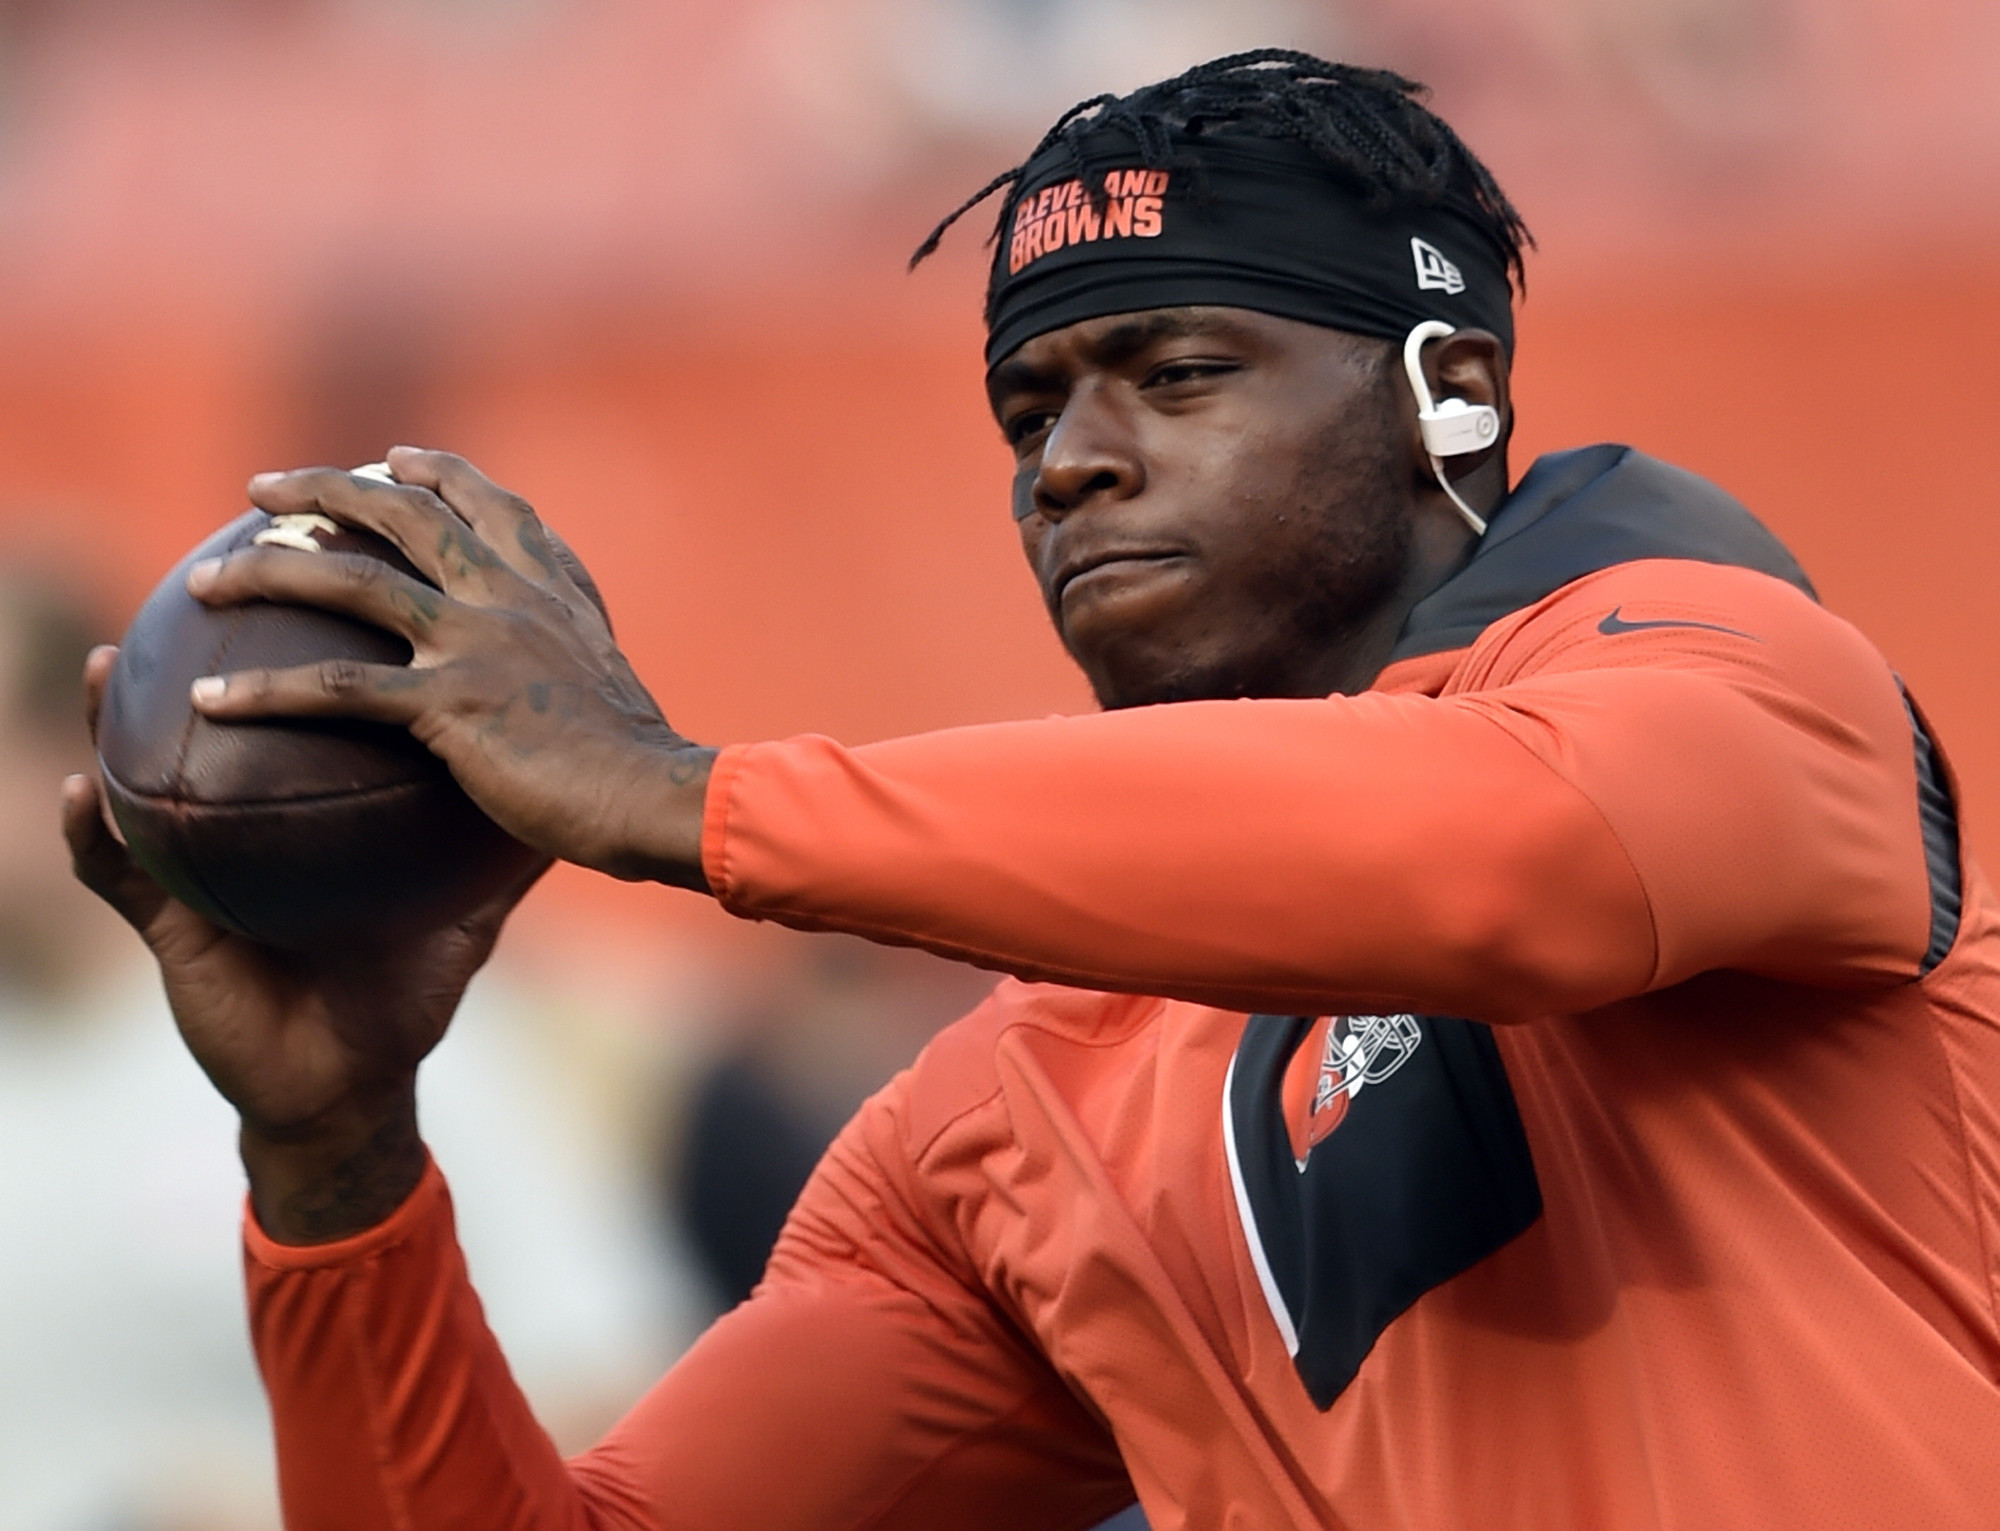 Browns WR Josh Gordon says he drank or used drugs before ...